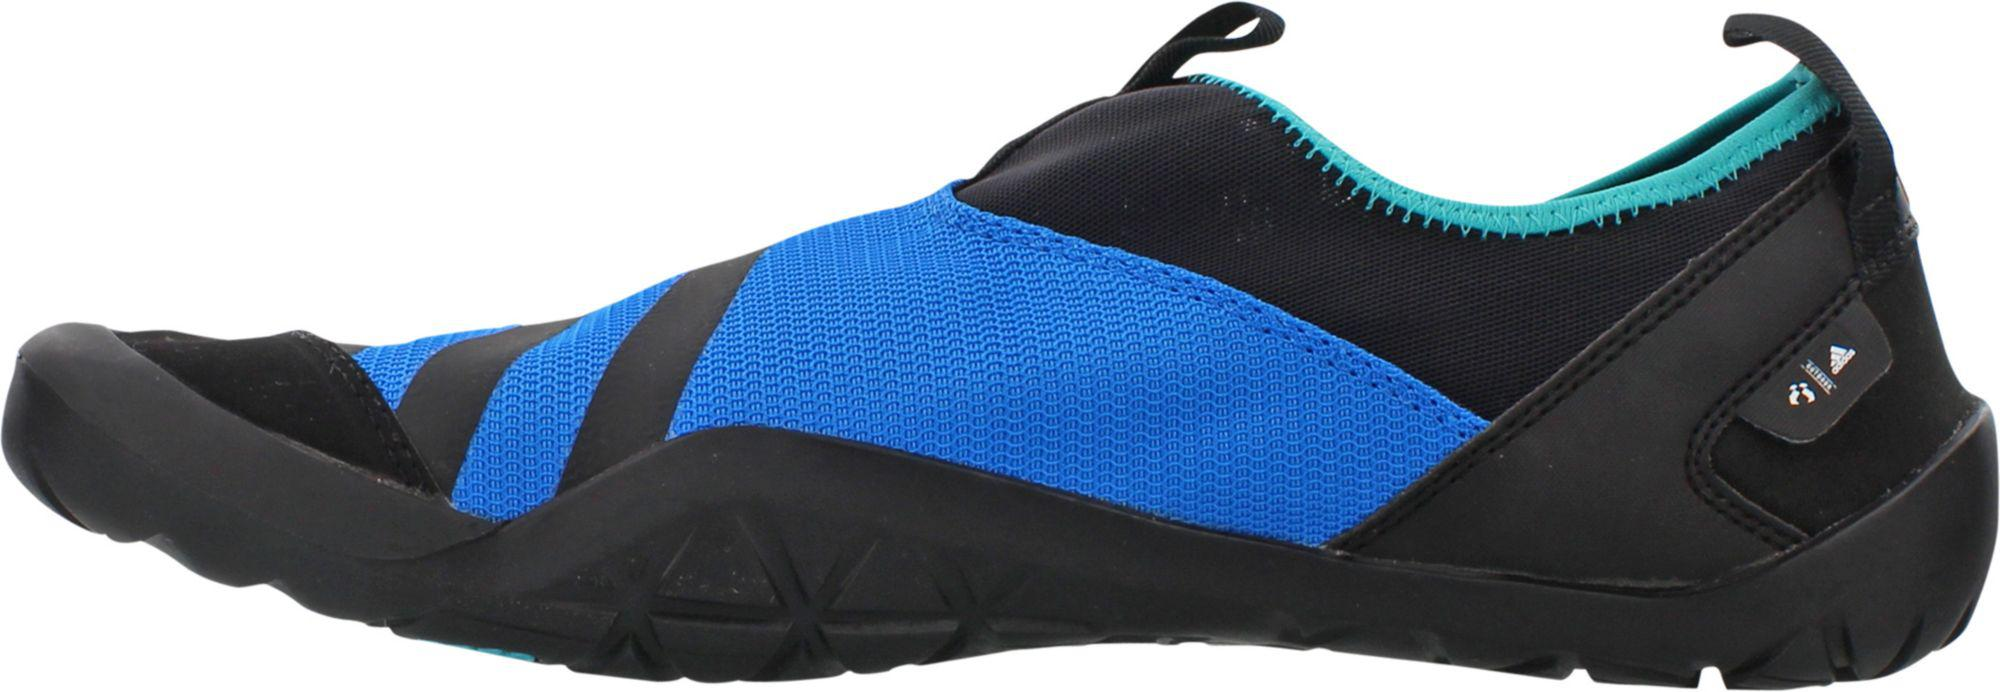 c8452704c23 ... promo code lyst adidas outdoor climacool jawpaw slip on water shoes in  blue e1884 13639